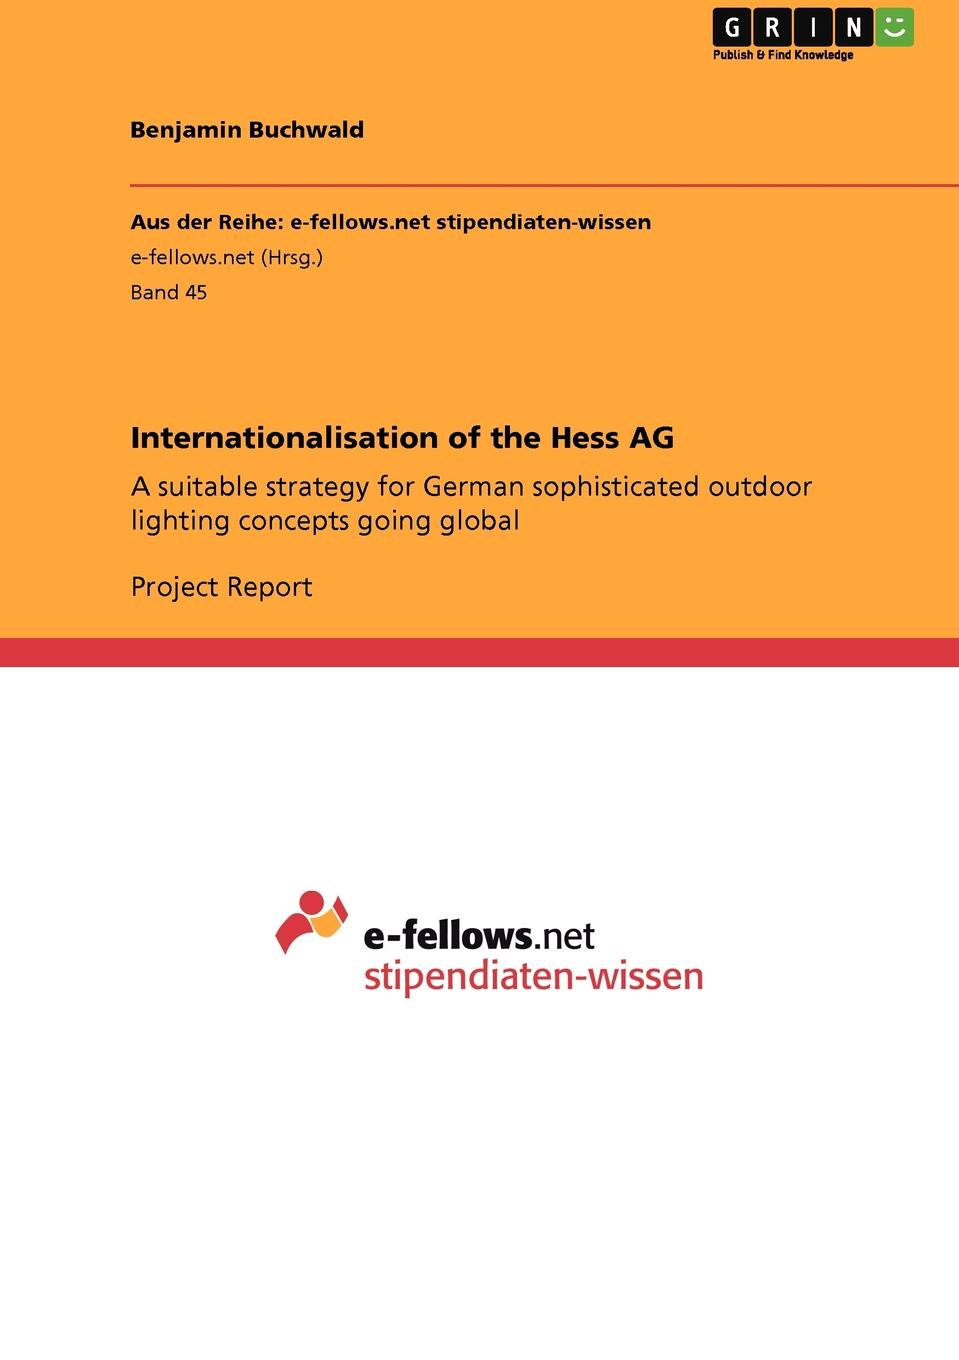 Benjamin Buchwald Internationalisation of the Hess AG jason hess k w kirkland investigation of davis swamp